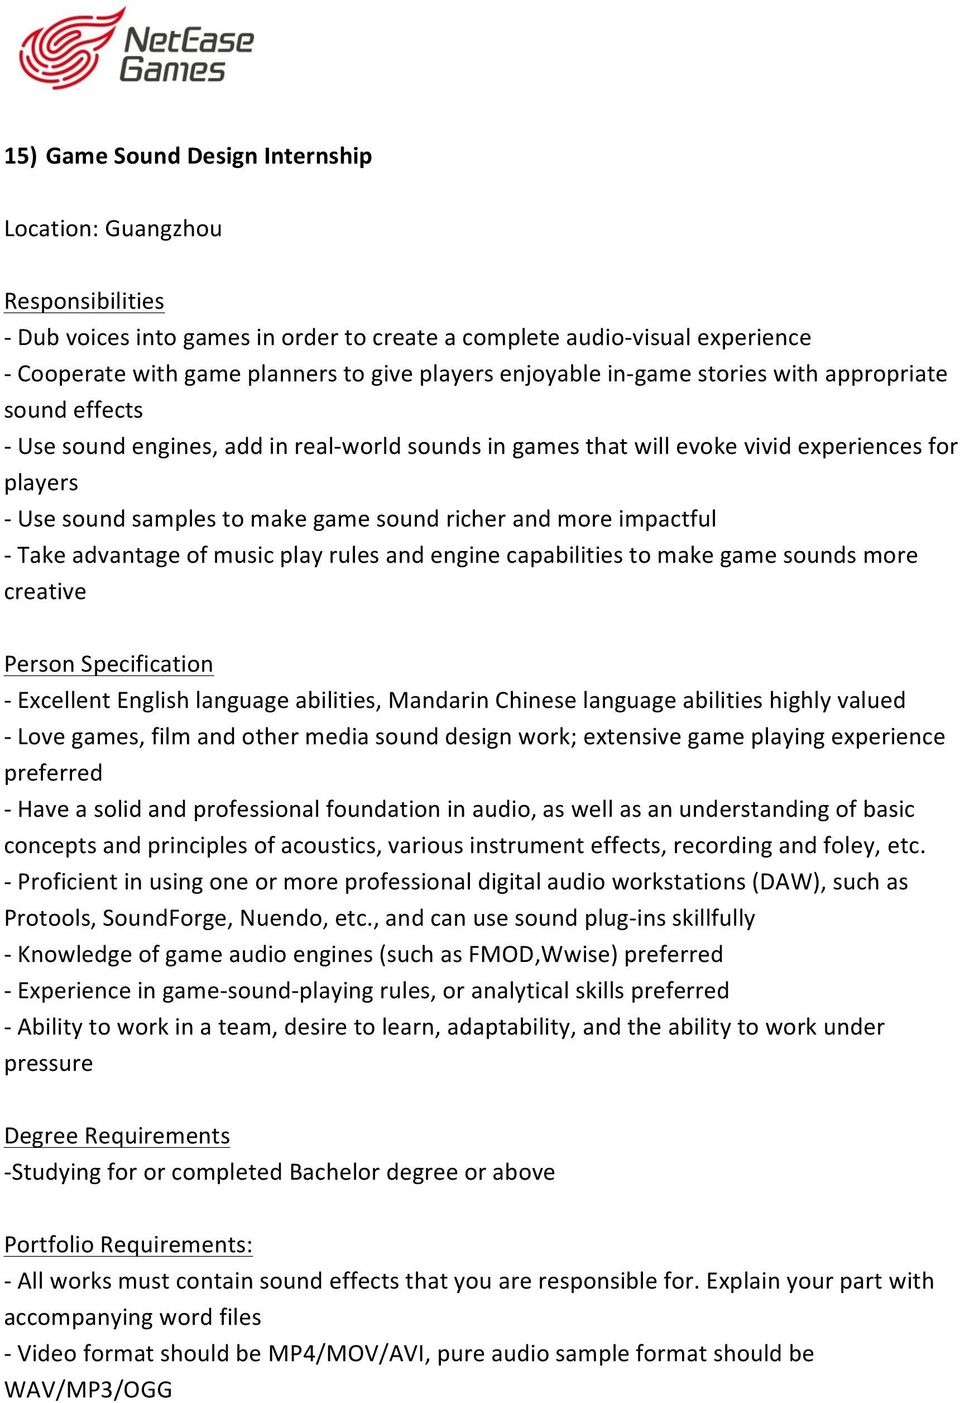 advantage of music play rules and engine capabilities to make game sounds more creative - Excellent English language abilities, Mandarin Chinese language abilities highly valued - Love games, film